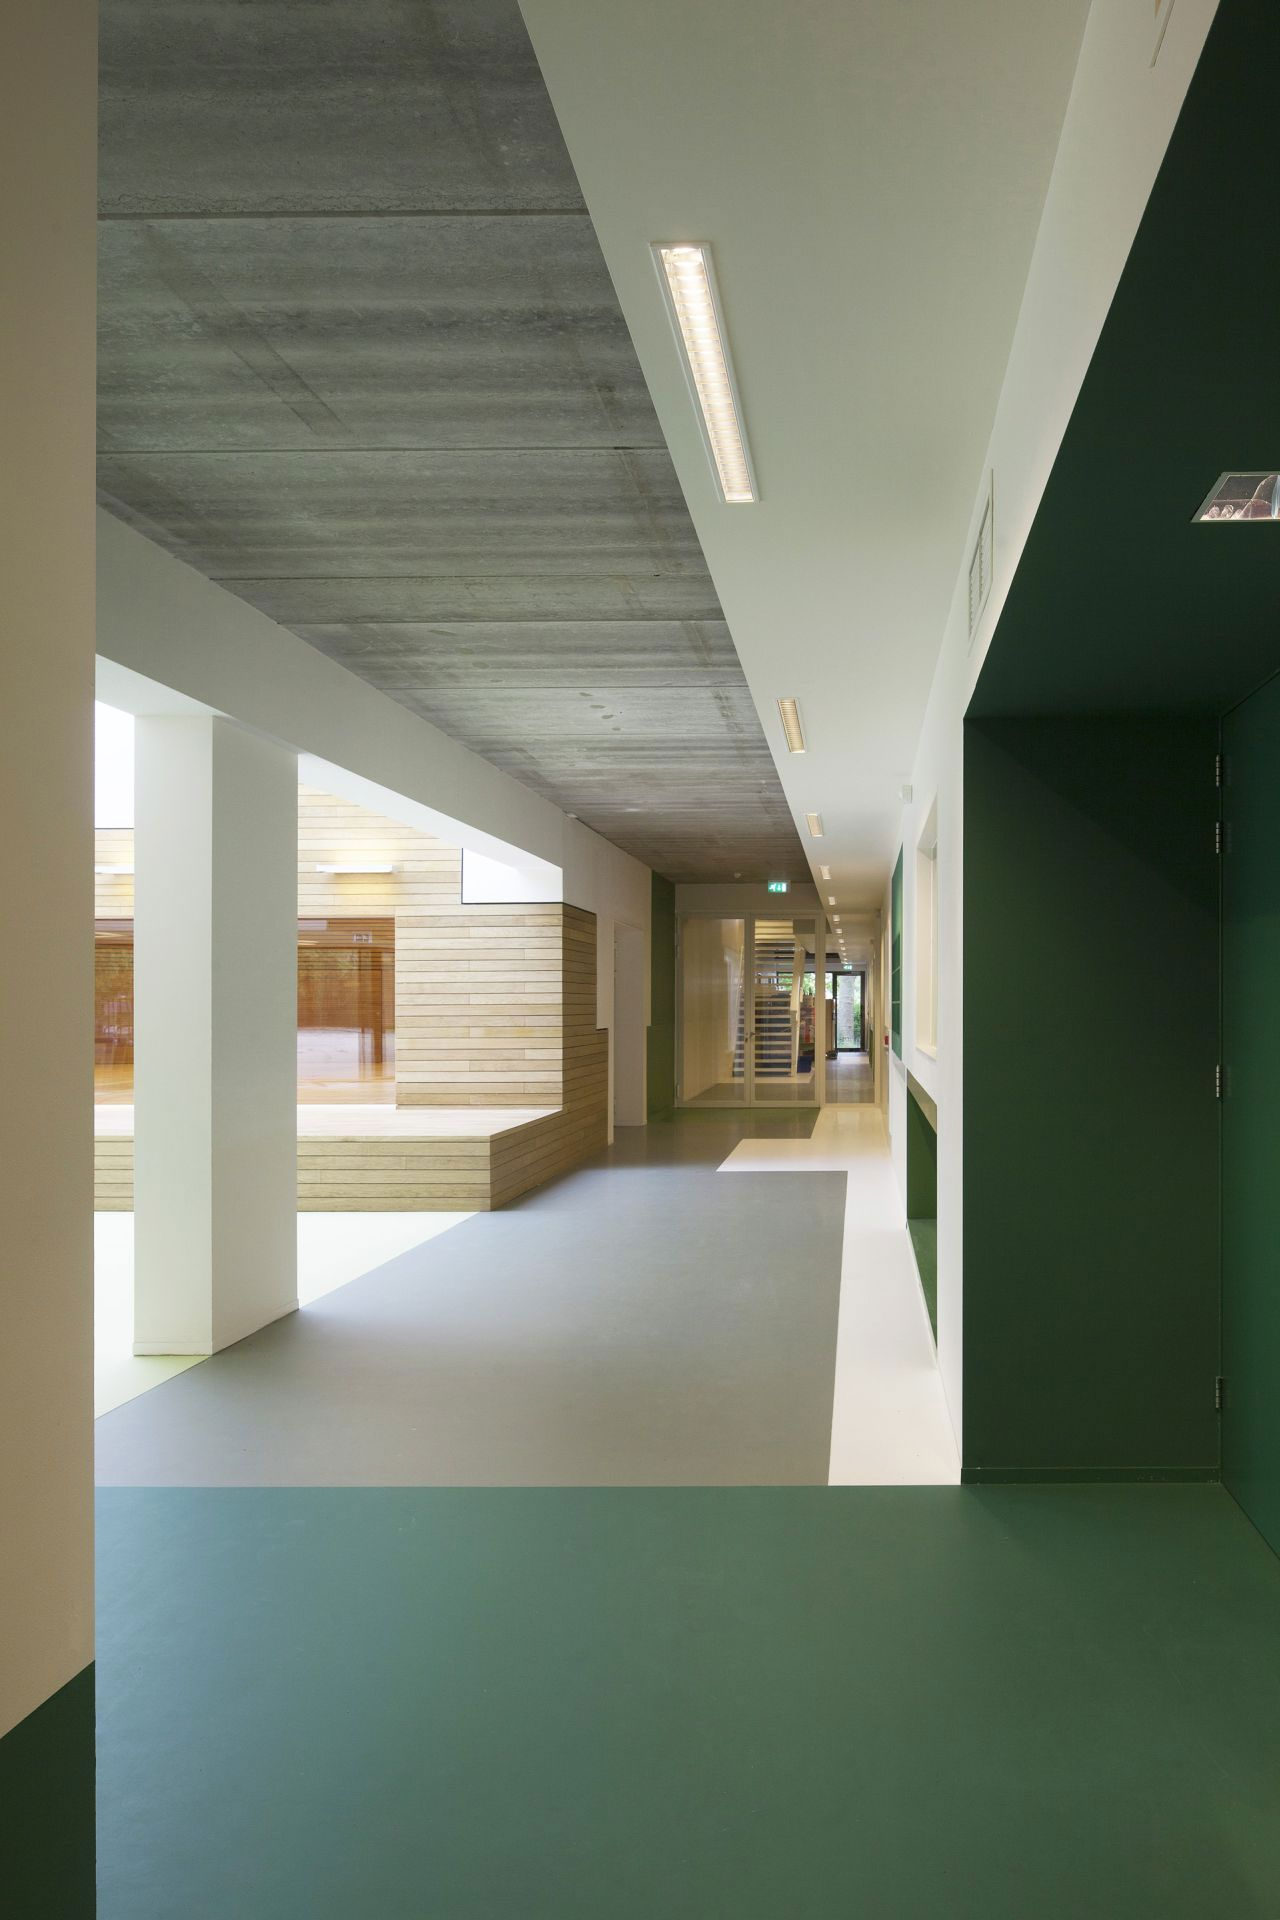 Why are architects so sick for green colegios y arquitectura for Edificios escolares arquitectura